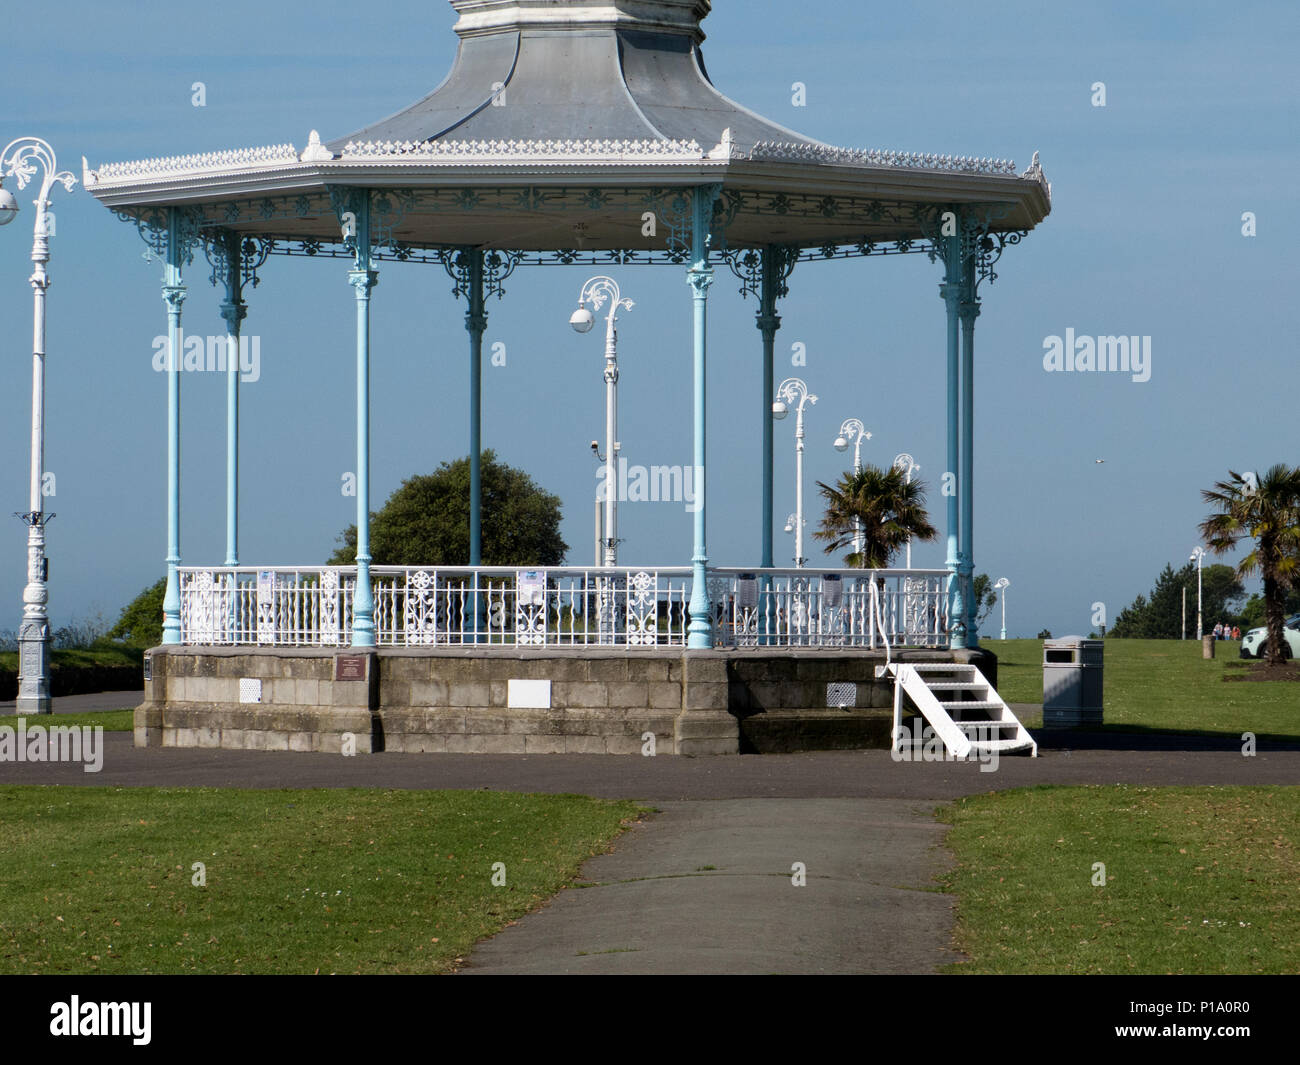 The Bandstand at the Leas Folkestone - Stock Image